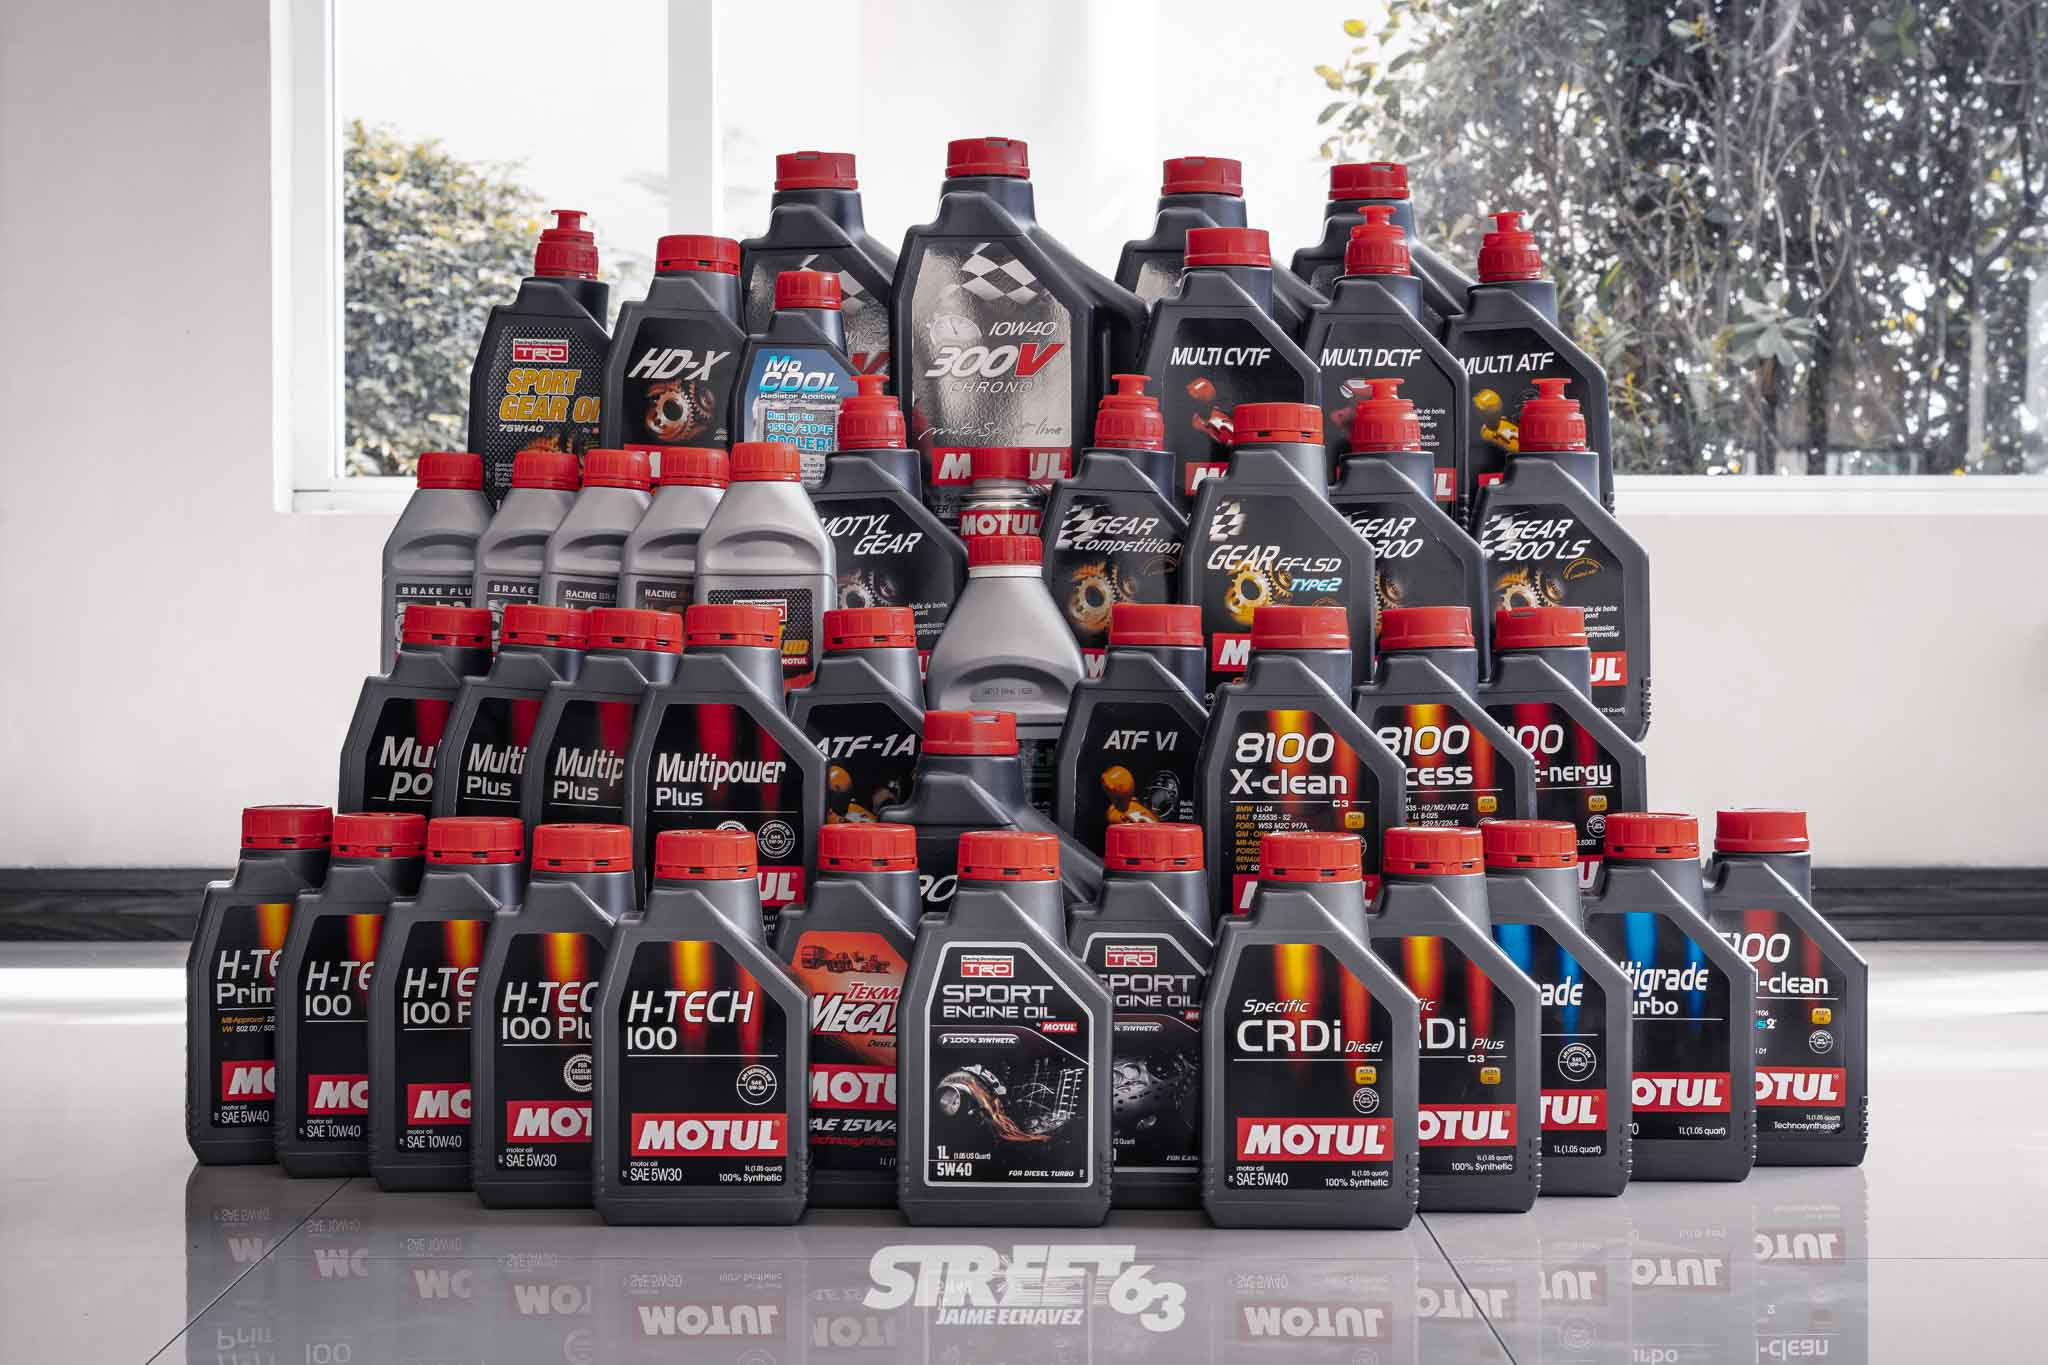 **Product Lineup:** Getting Acquainted with Motul Products